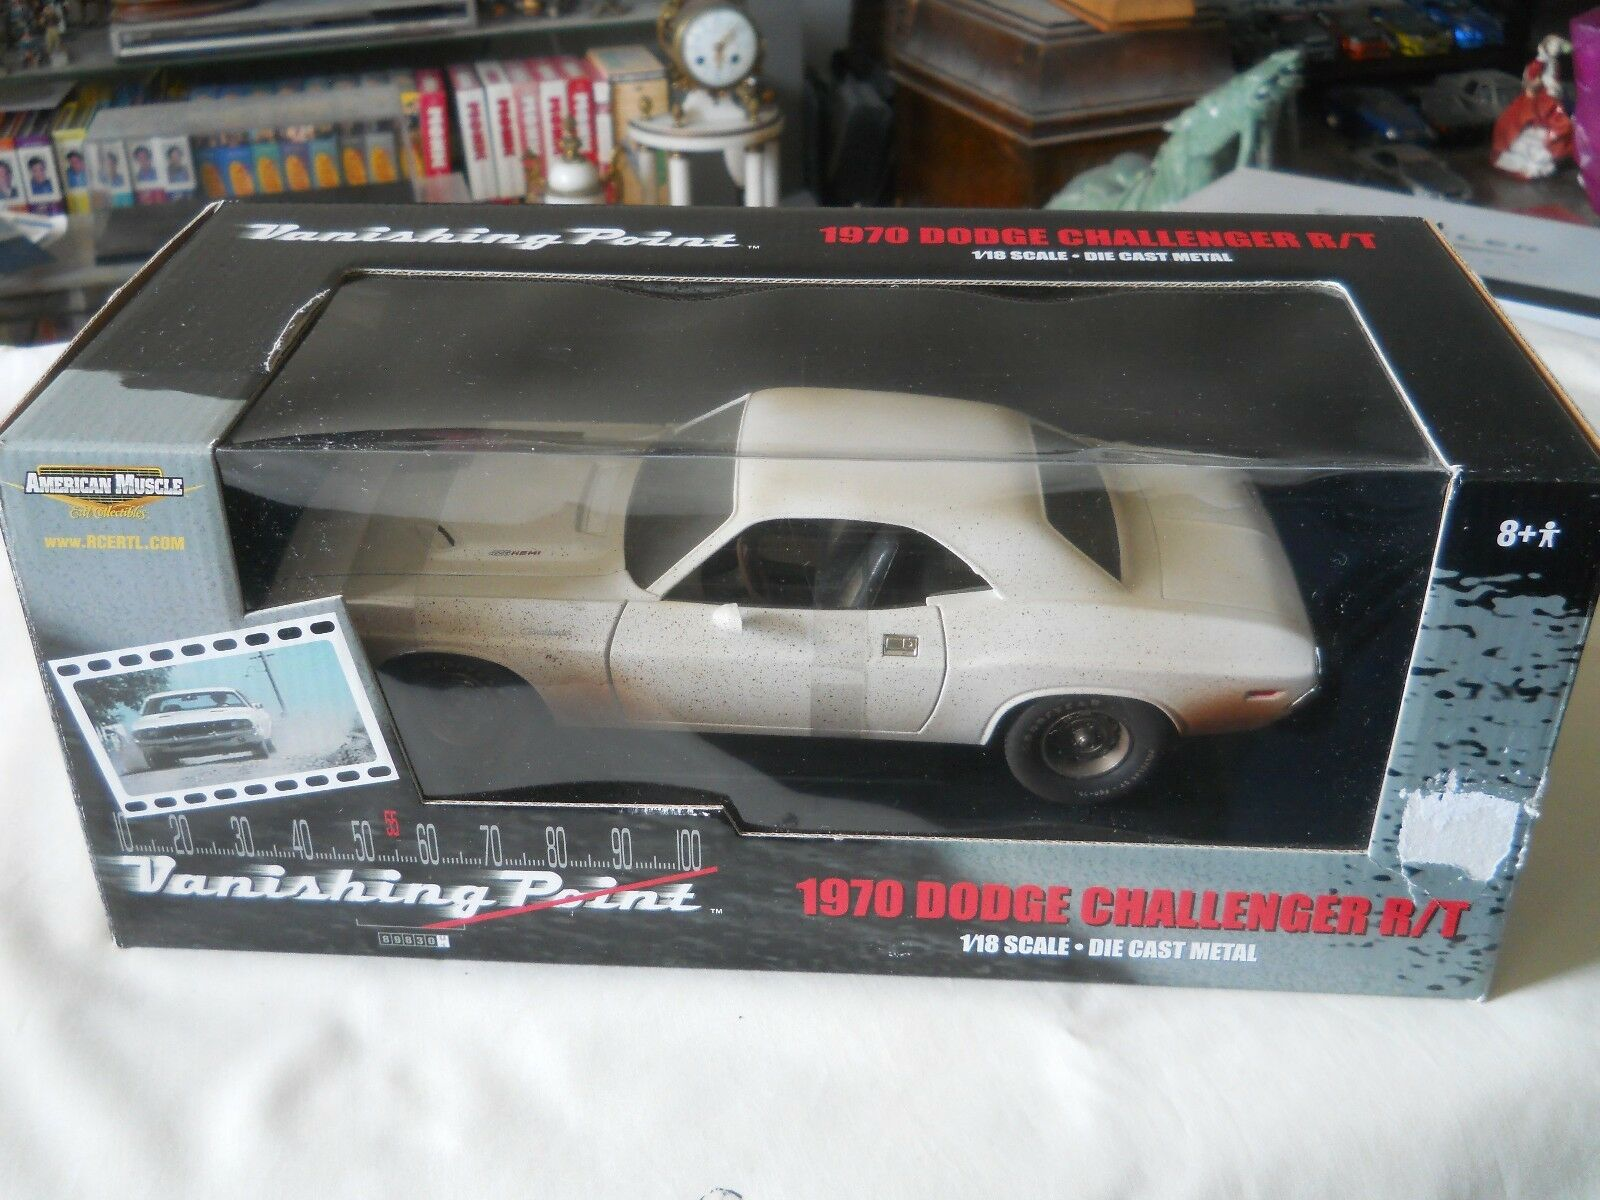 ERTL 1970 Dodge Challenger R T Vanishing Point Dirty version 1 18 Diecast